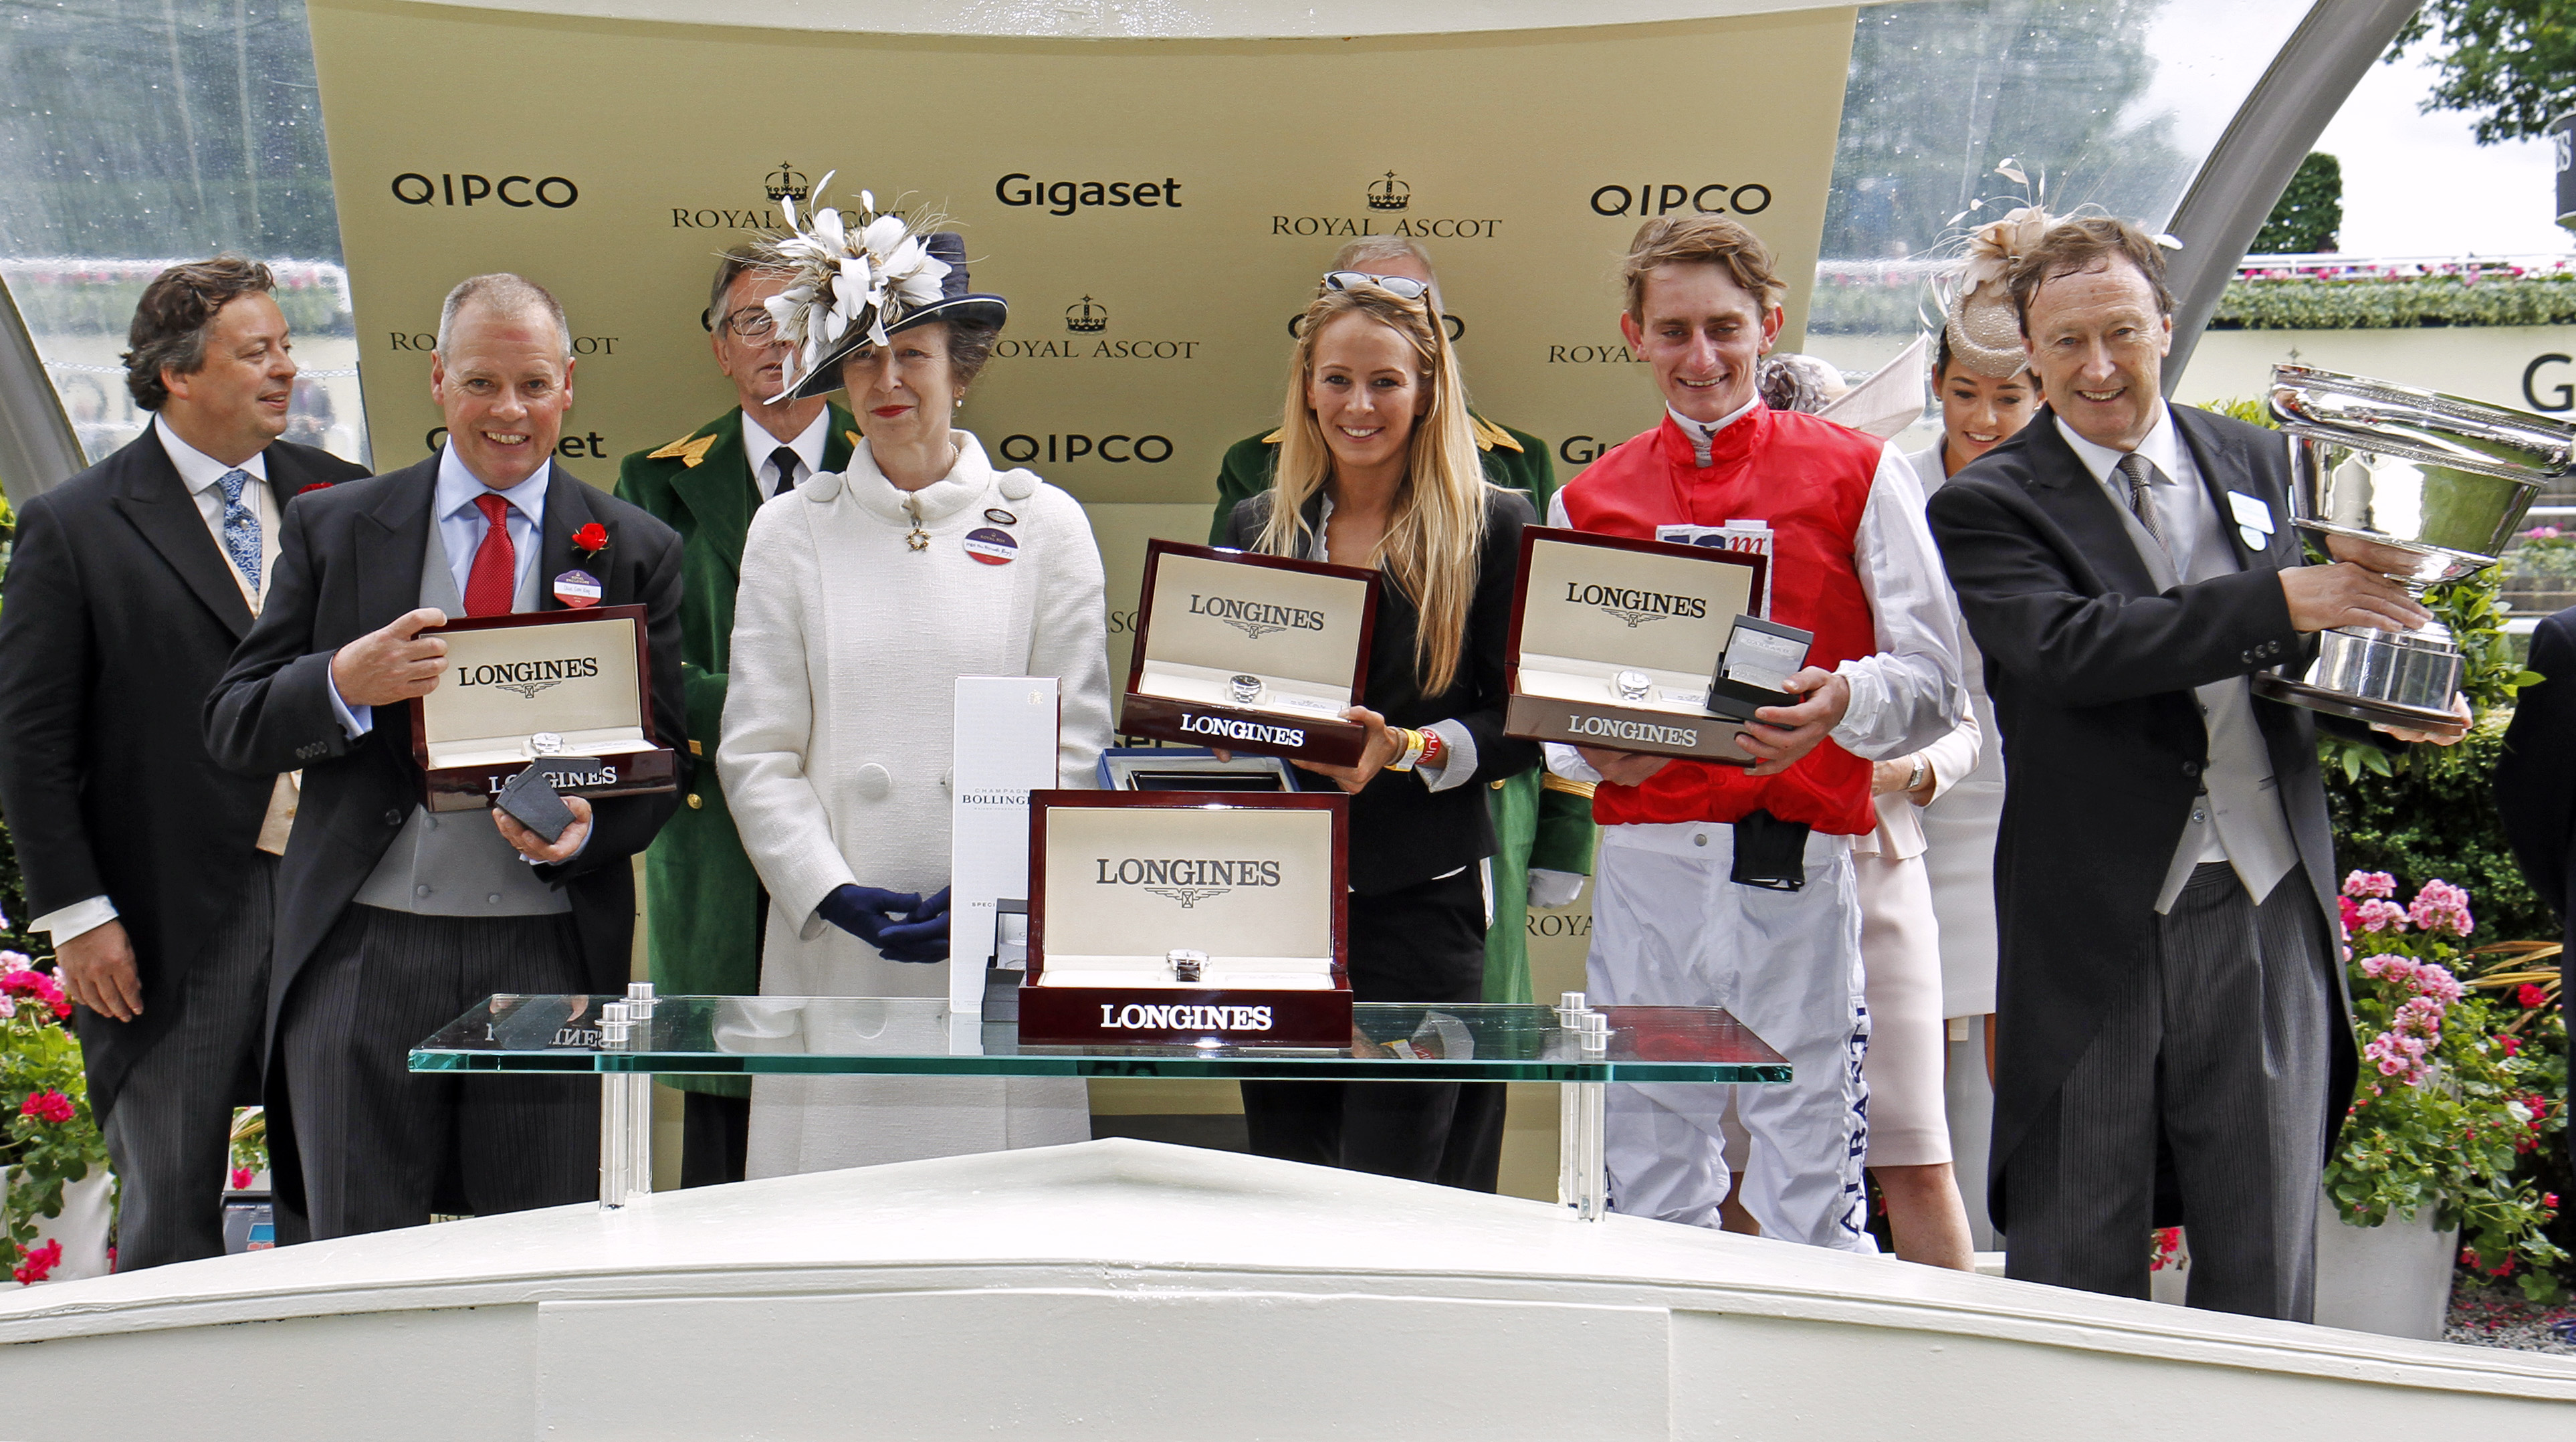 Presentation by The Princess Royal to Alan Spence, Adam Kirby and Clive Cox for The King's Stand Stakes won by PROFITABLE Royal Ascot 14 Jun 2016 - Pic Steven Cargill / Racingfotos.com